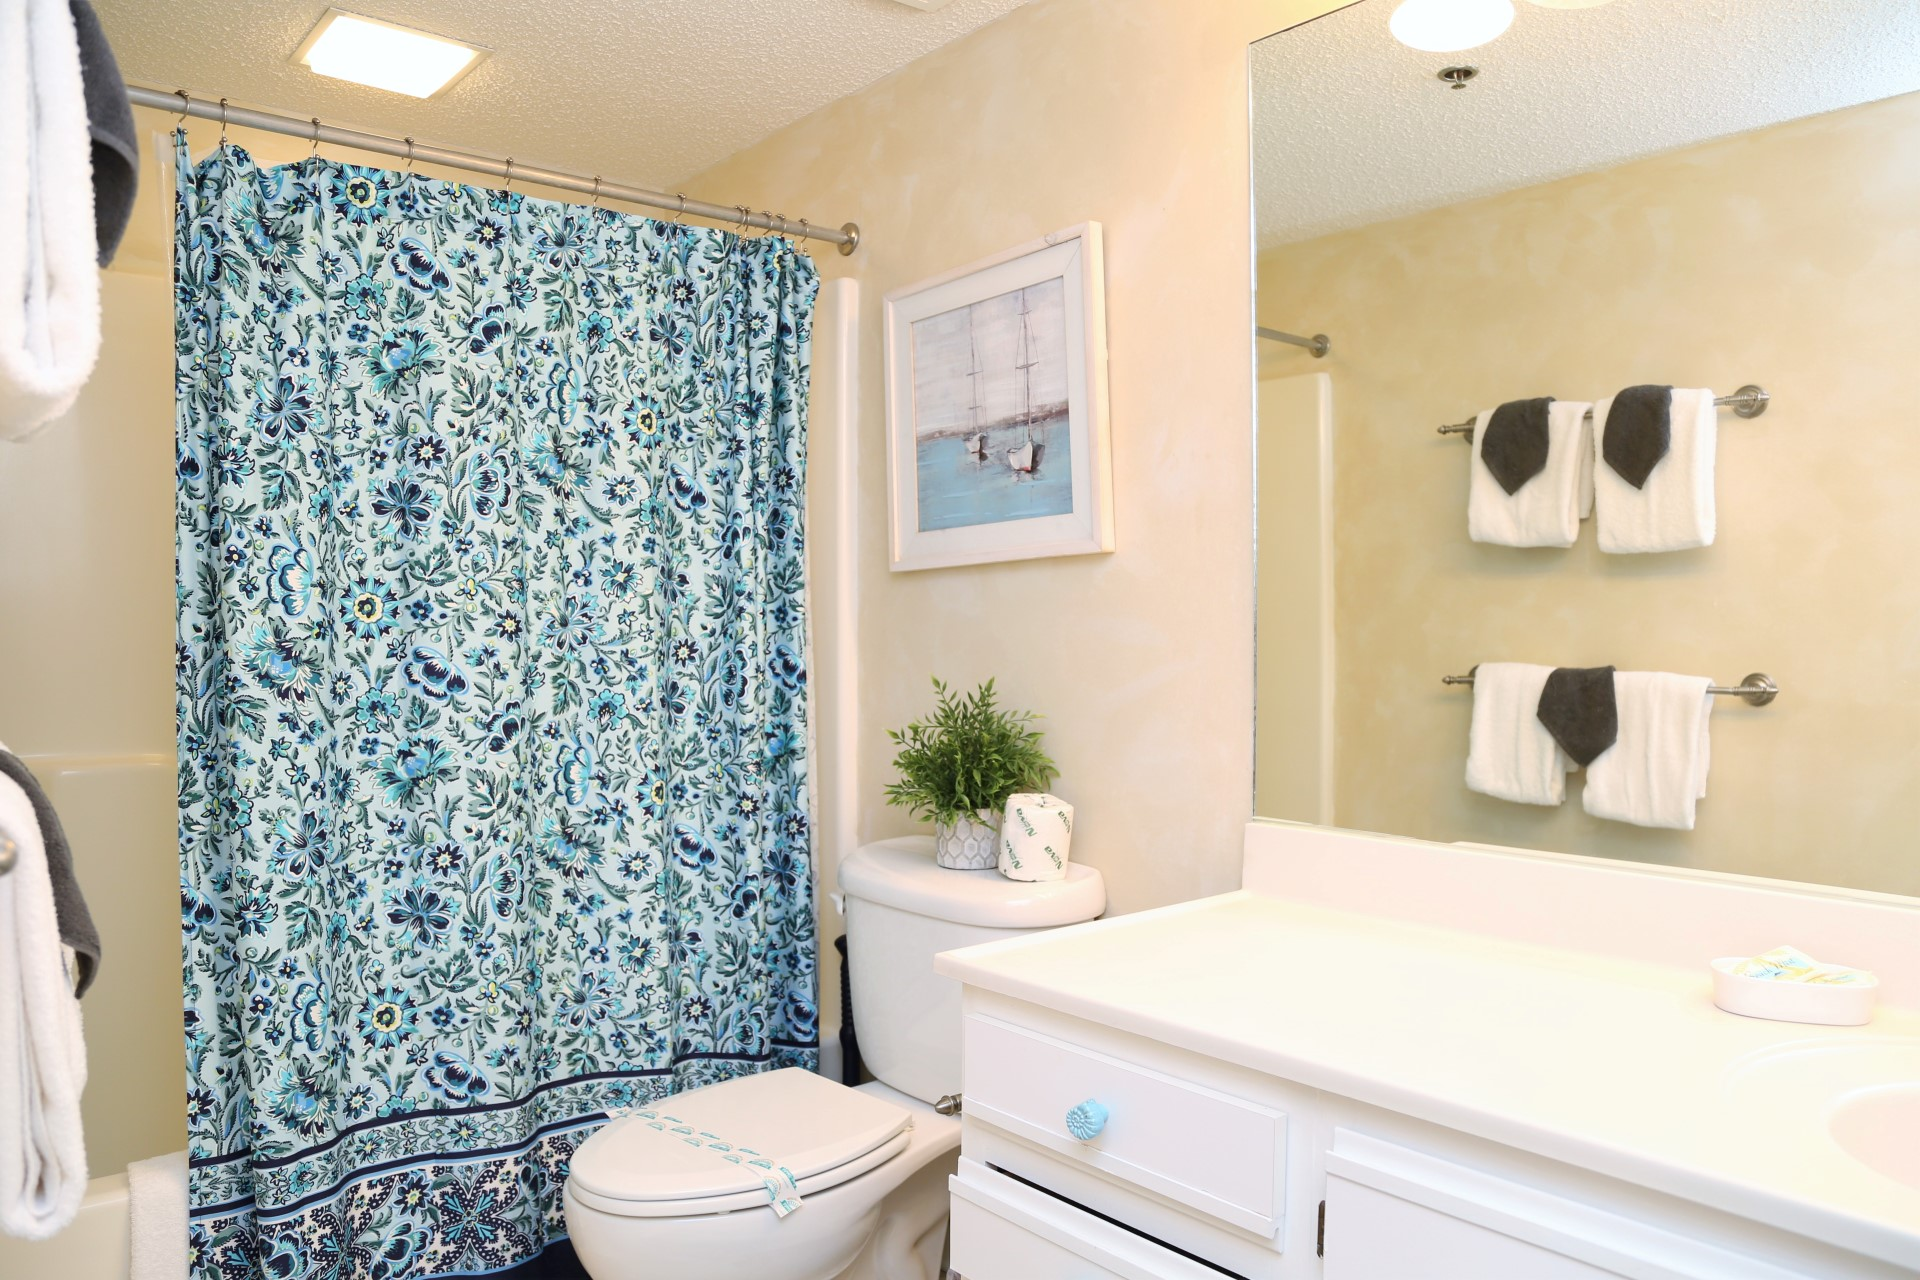 The second bathroom has a combo shower/tub and is stocked wi